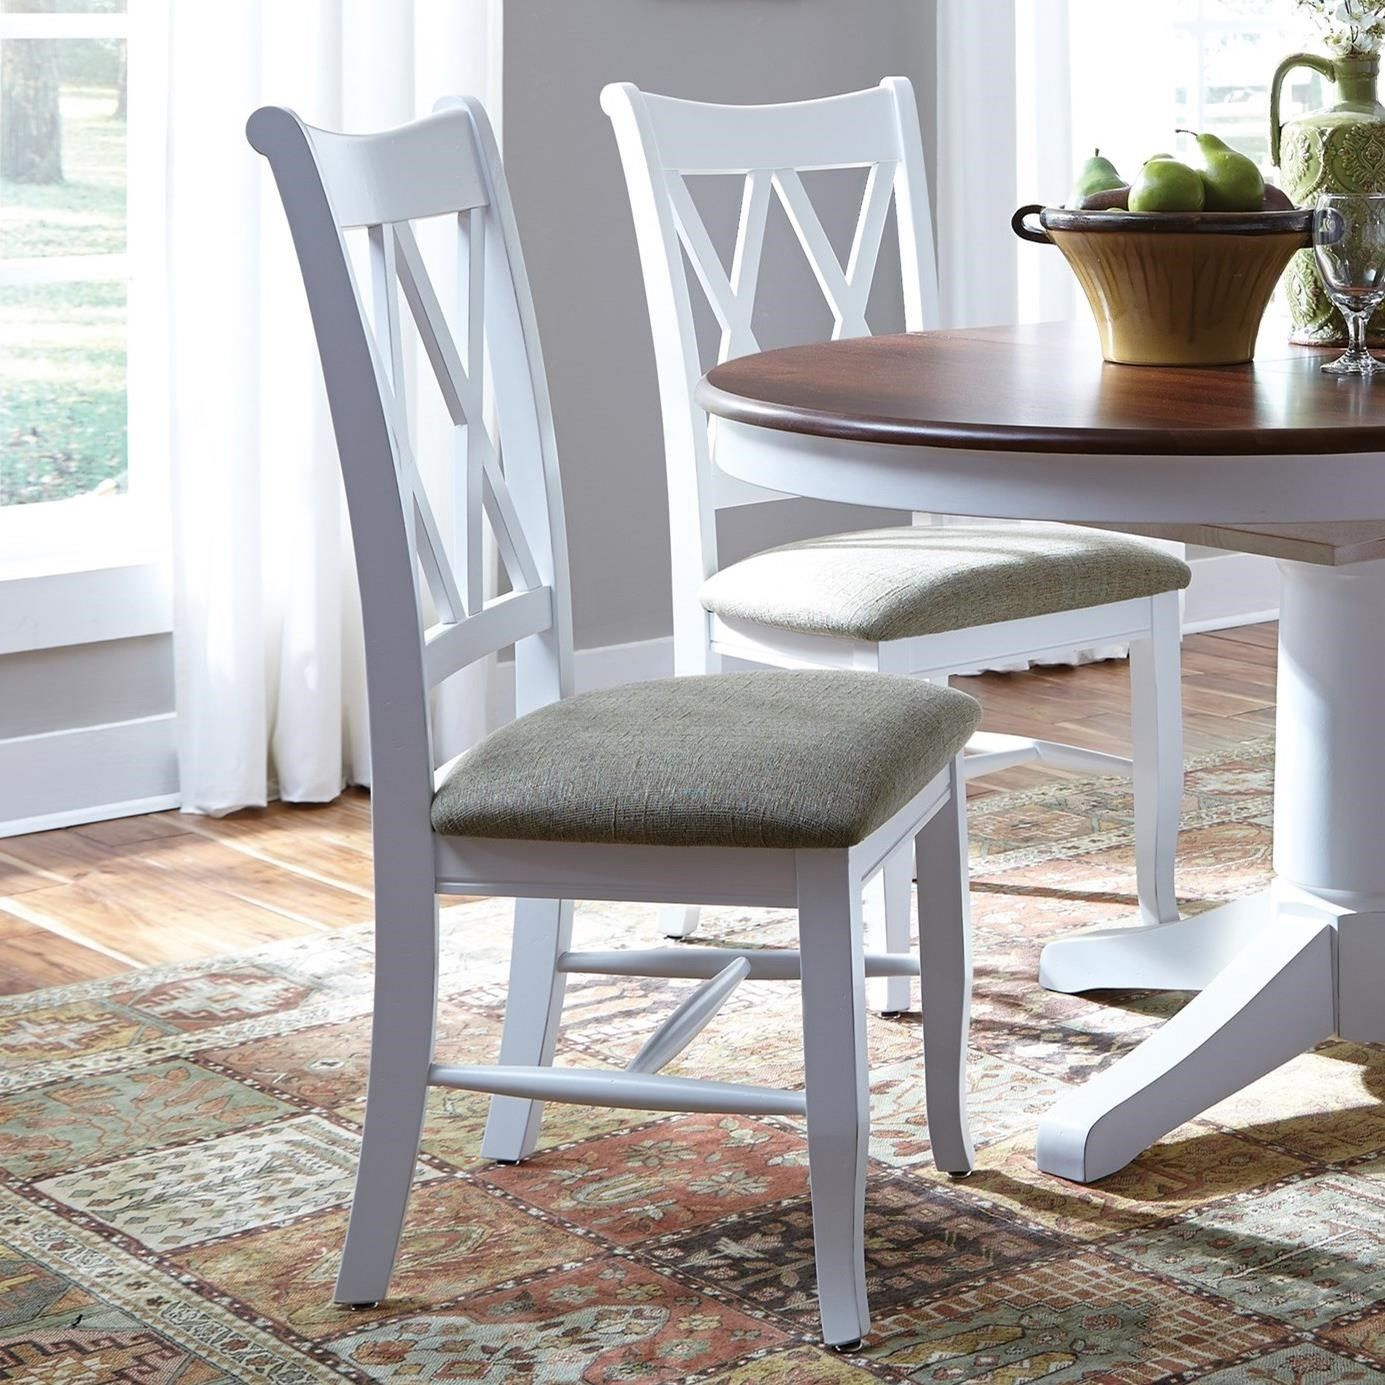 Select Dining Double X Back Chair By John Thomas Furniture